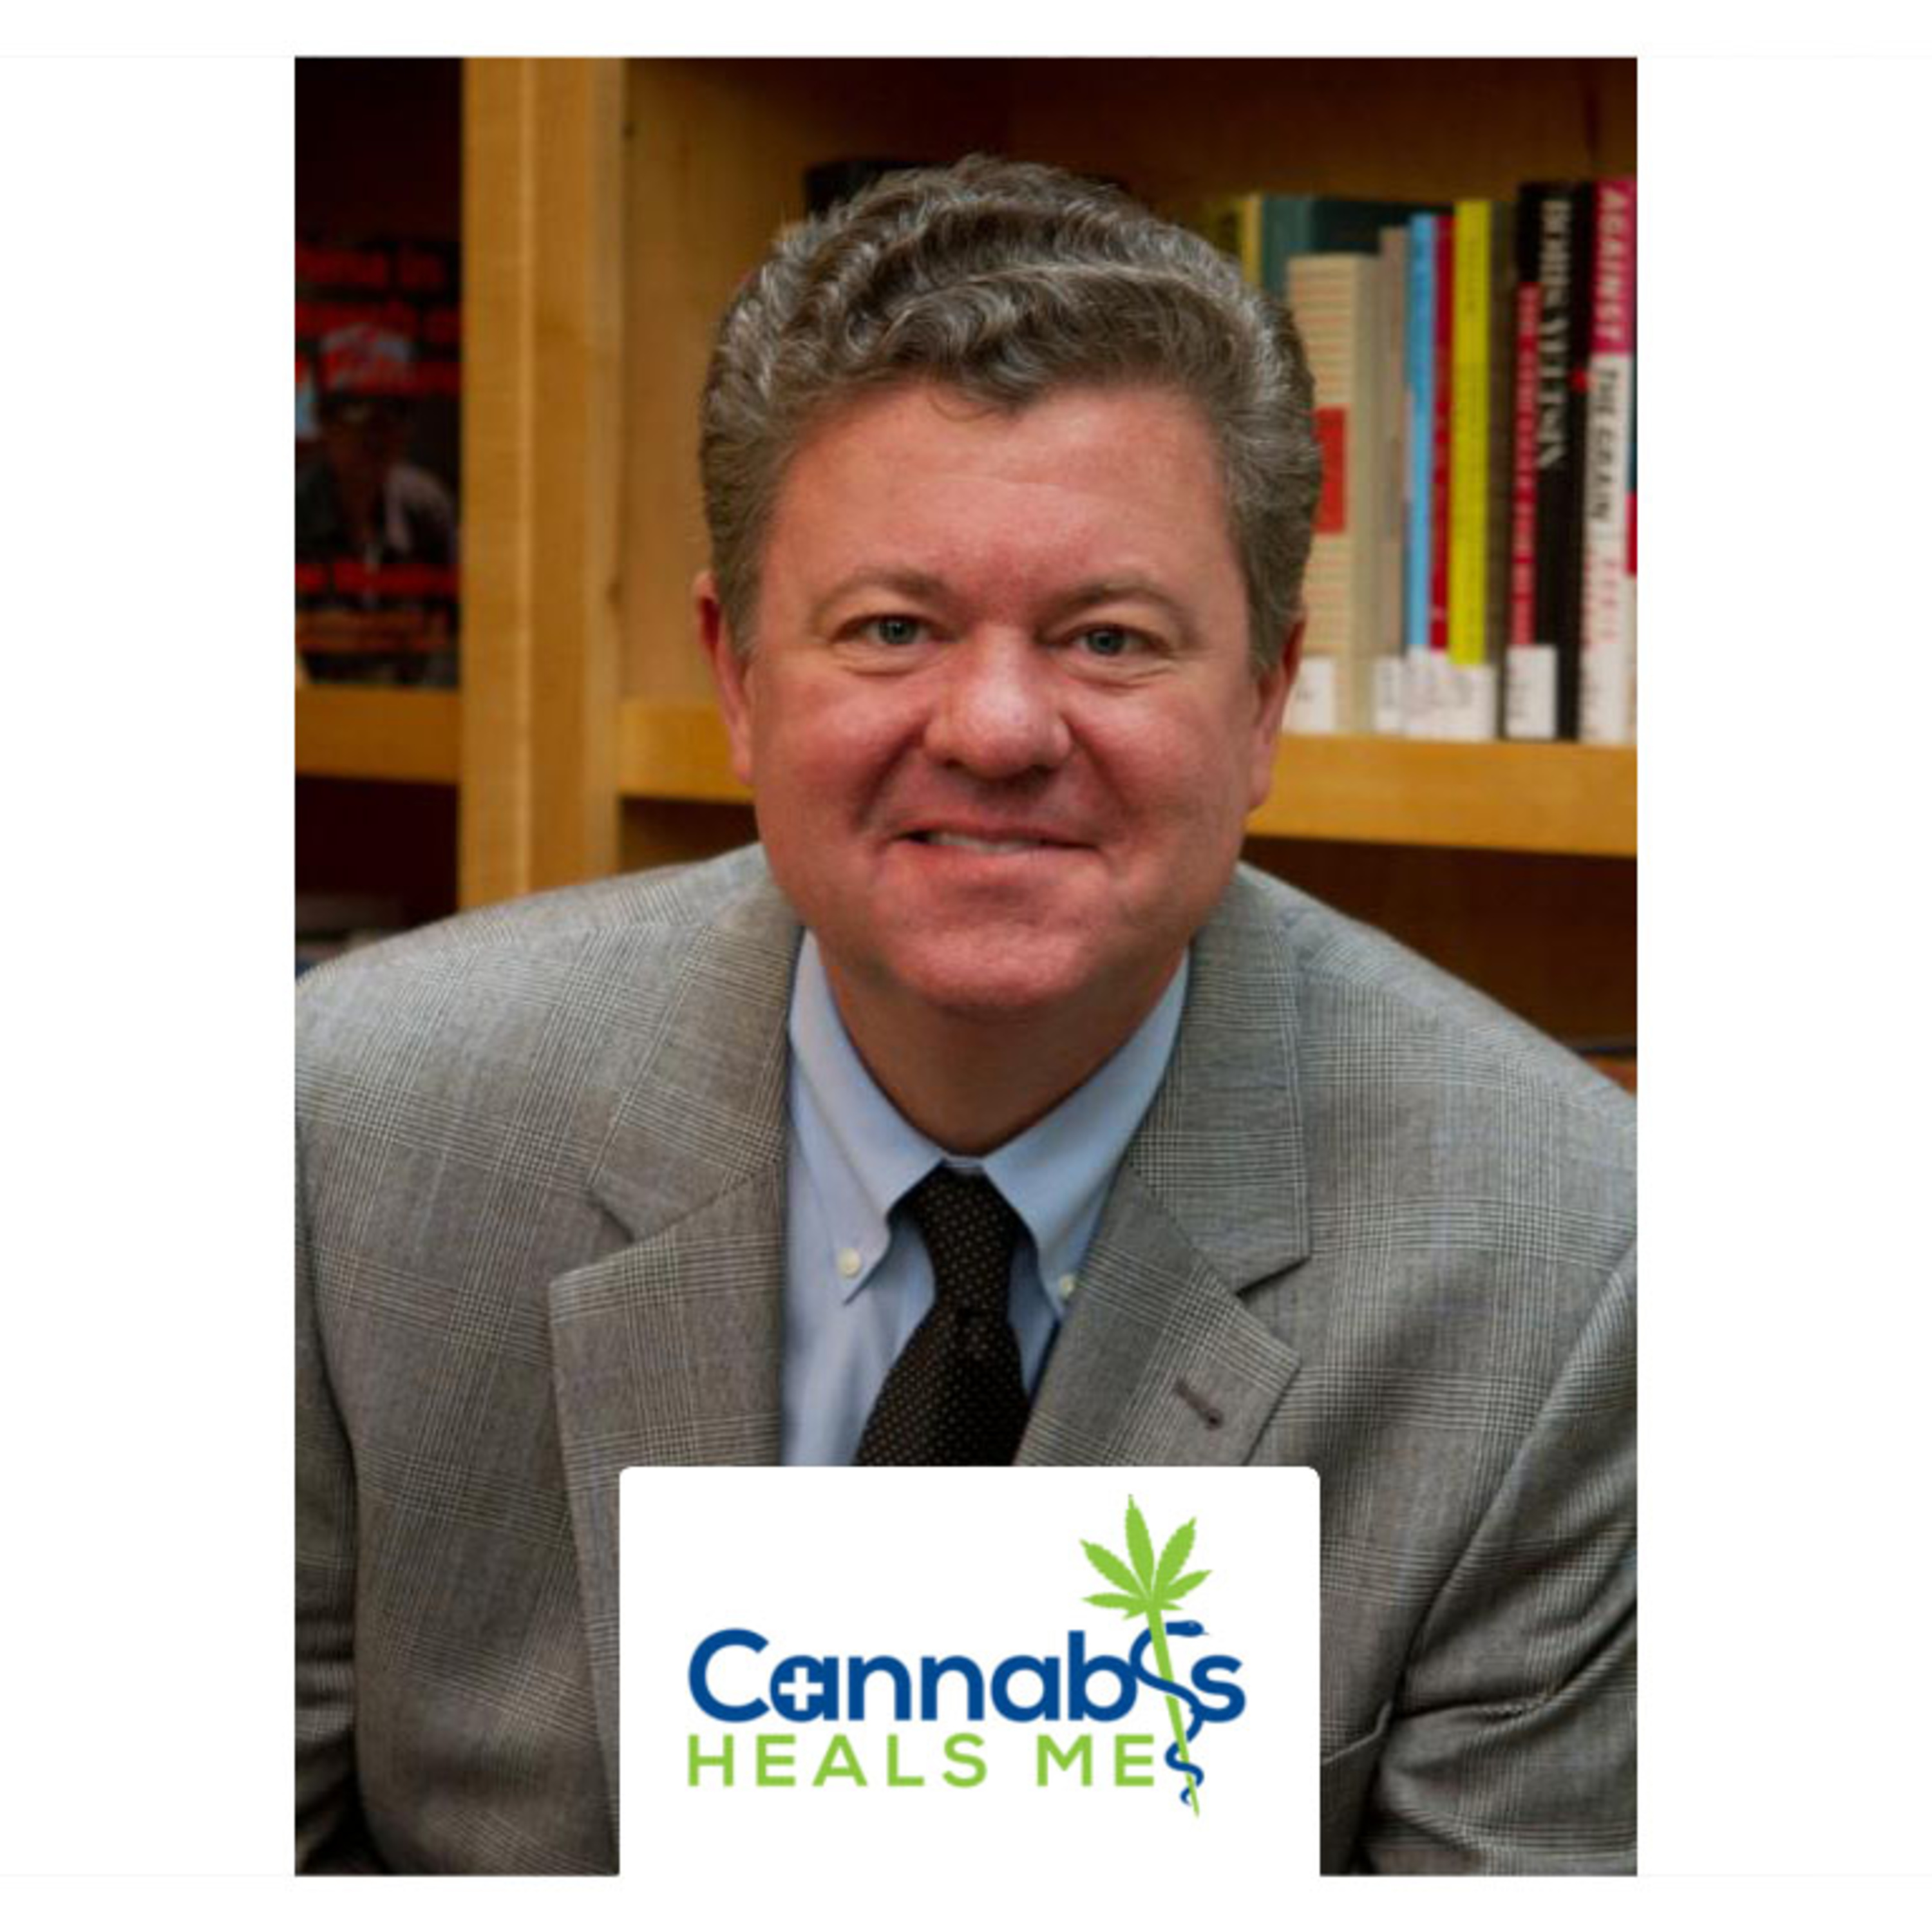 Ep 115 - Mark Thornton - Cannabis & The Iron Law of Prohibition